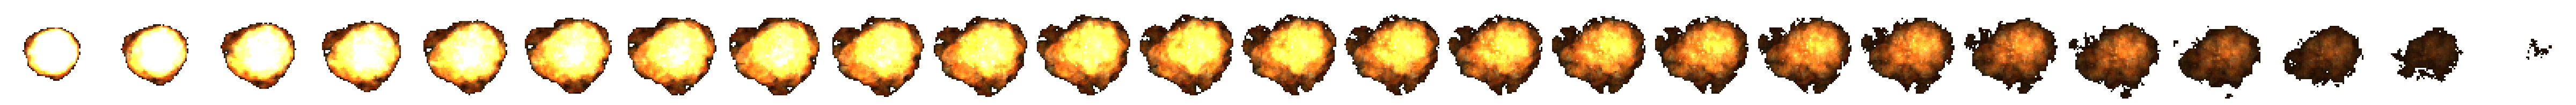 Explosion png sprite. Github cameronc spriterjs a